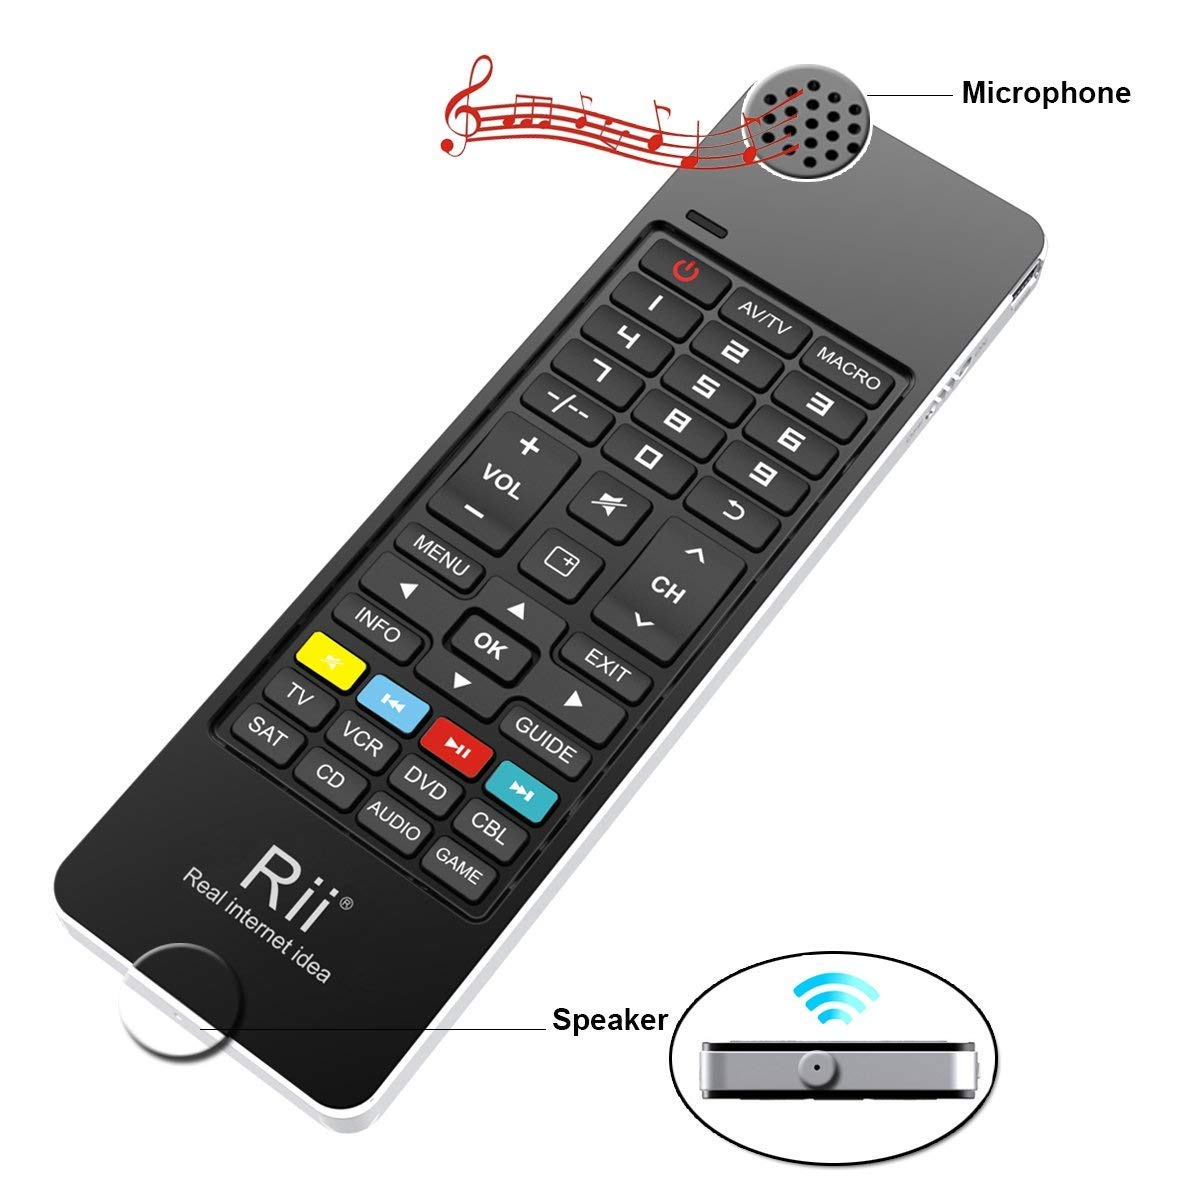 Smart TV Android Box Windows 2000 XP Vista 7 8 10 IR Learning Remote Control Speaker and Microphone for PC Rii K13 5 in 1 Multifunction Mini Wireless Keyboard with Fly Mouse